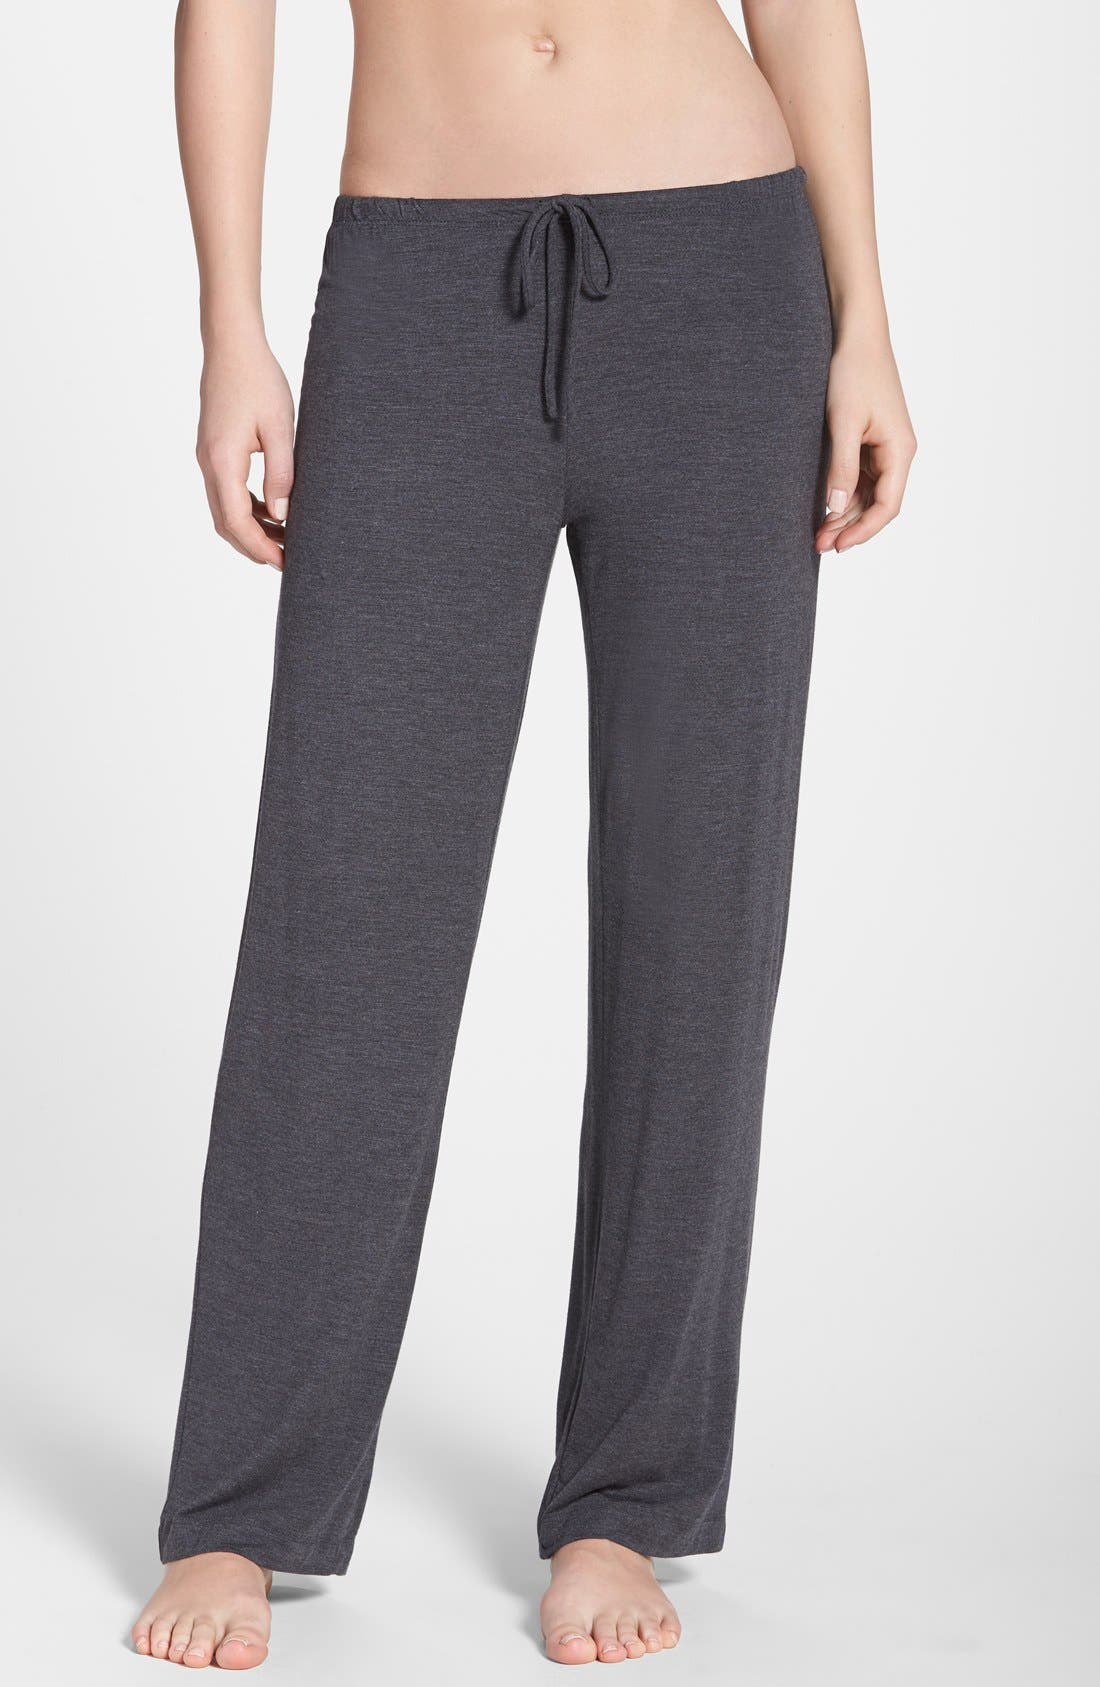 Main Image - DKNY 'Urban Essentials' Lounge Pants